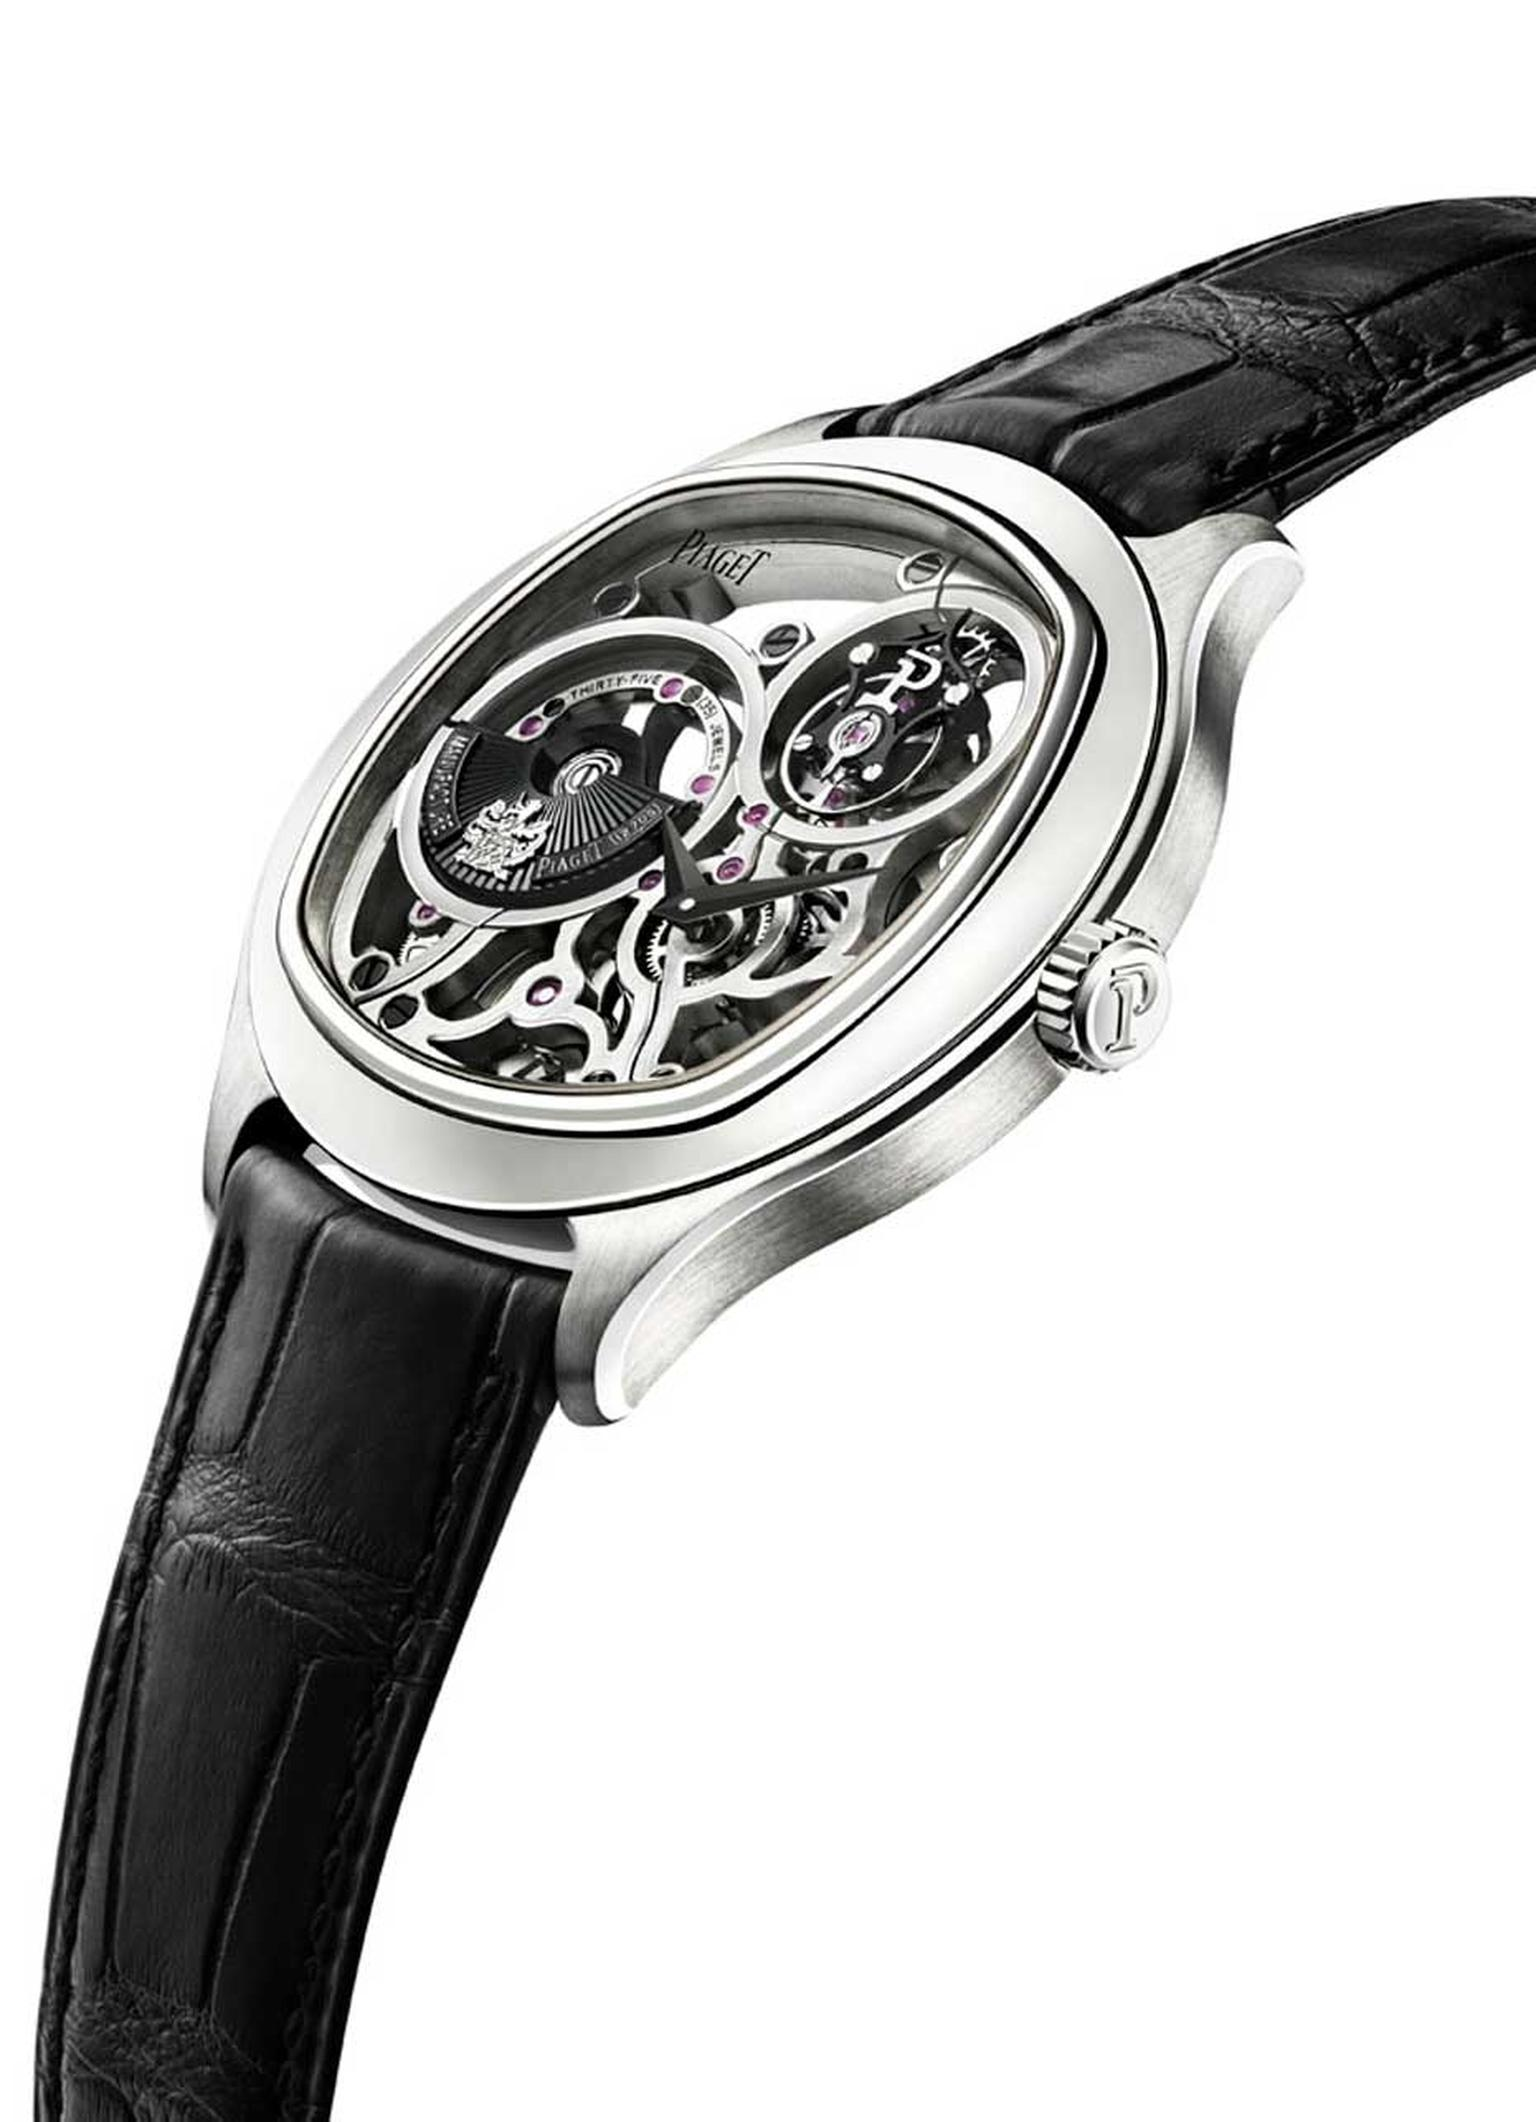 The new Piaget Emperador Coussin 1270S is the world's thinnest tourbillon automatic skeleton watch, with a case thickness measuring just 8.85mm thanks to the 5.05mm thick movement.